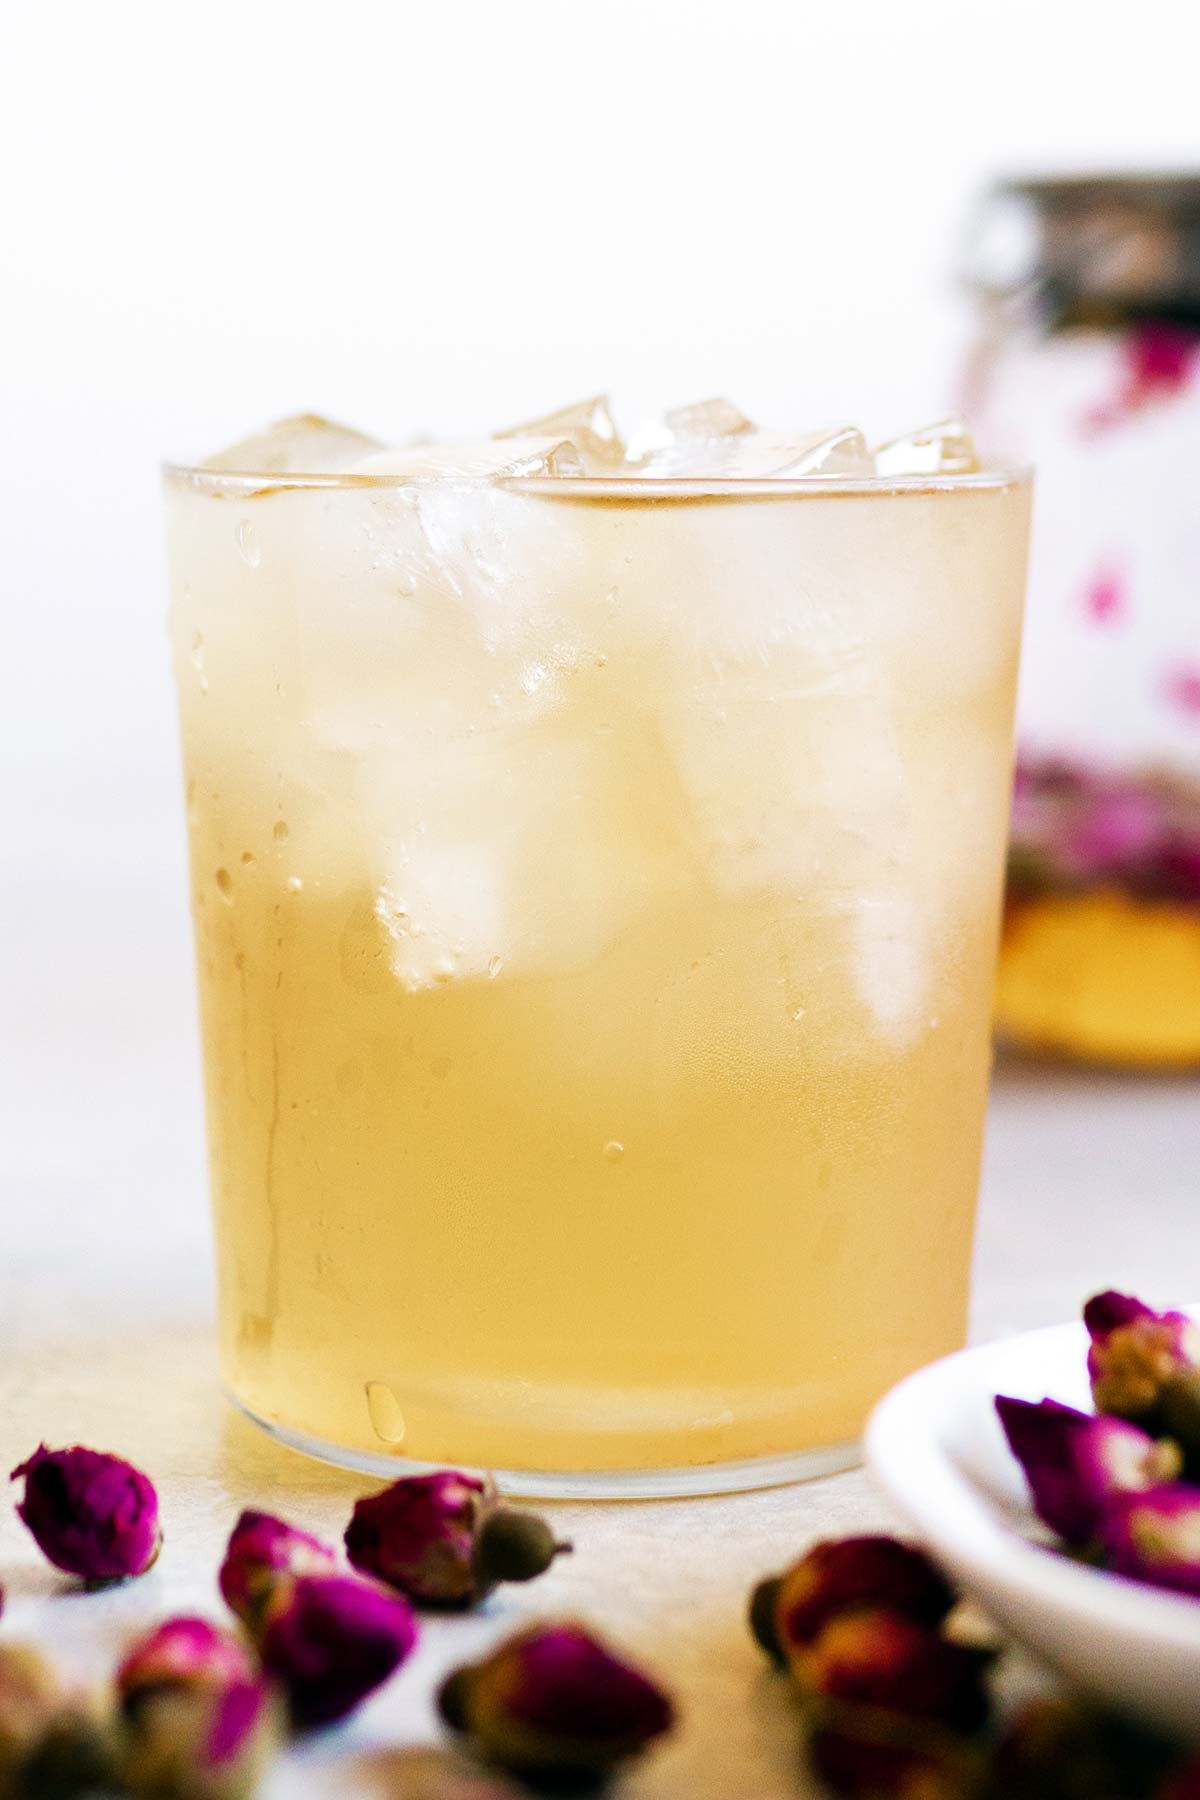 Iced rose tea in a glass.